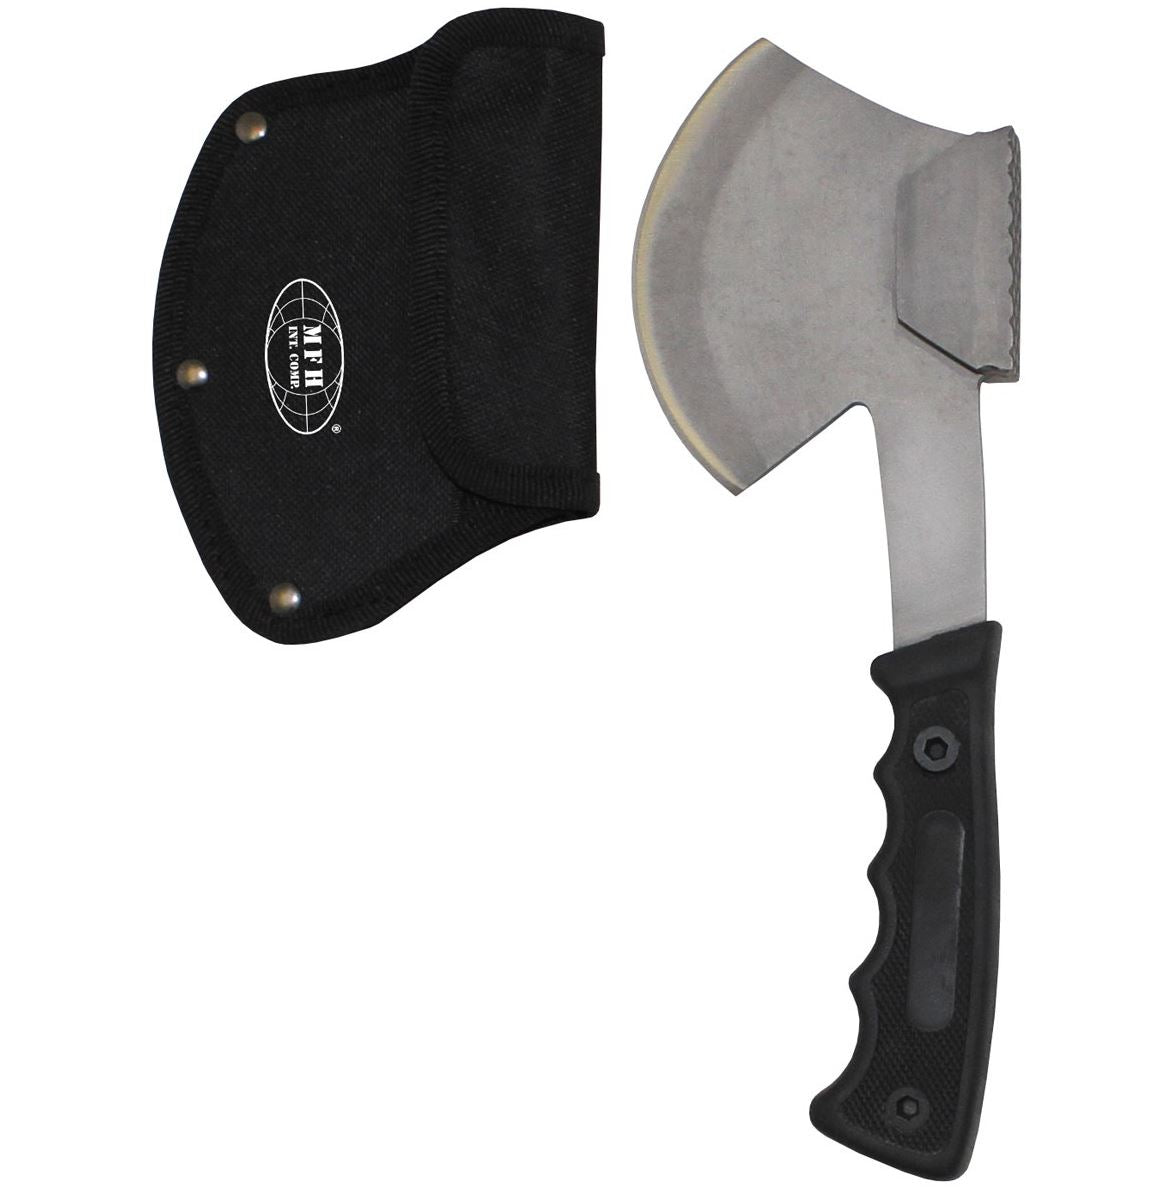 MFH Army Style Hammer Axe Multi Function Tool Hatchet and Cover